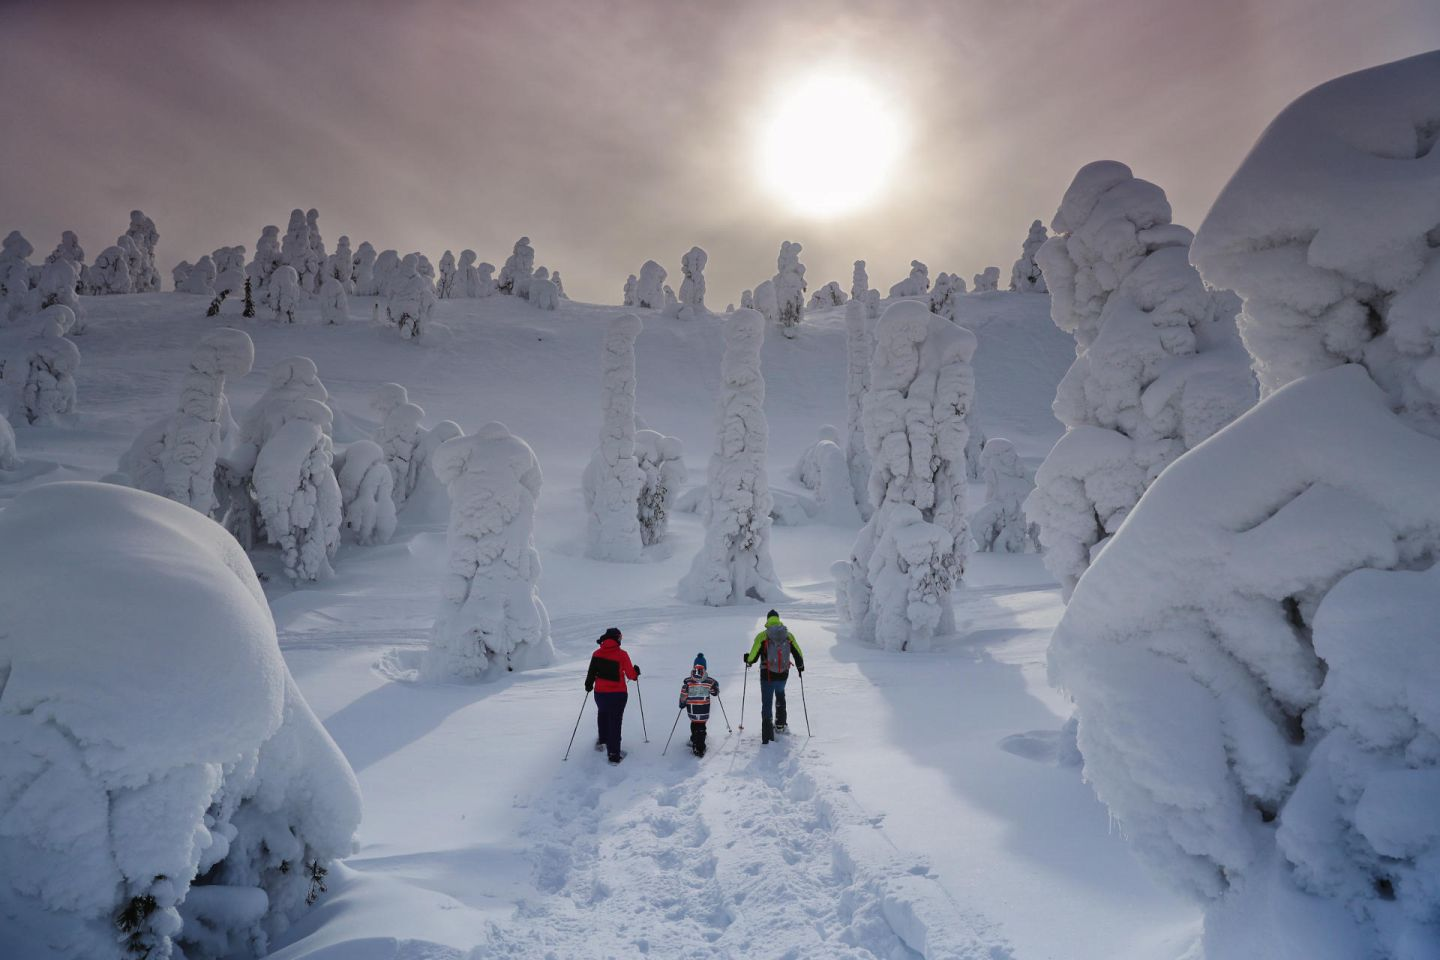 Snowy forest under the winter sun in Lapland